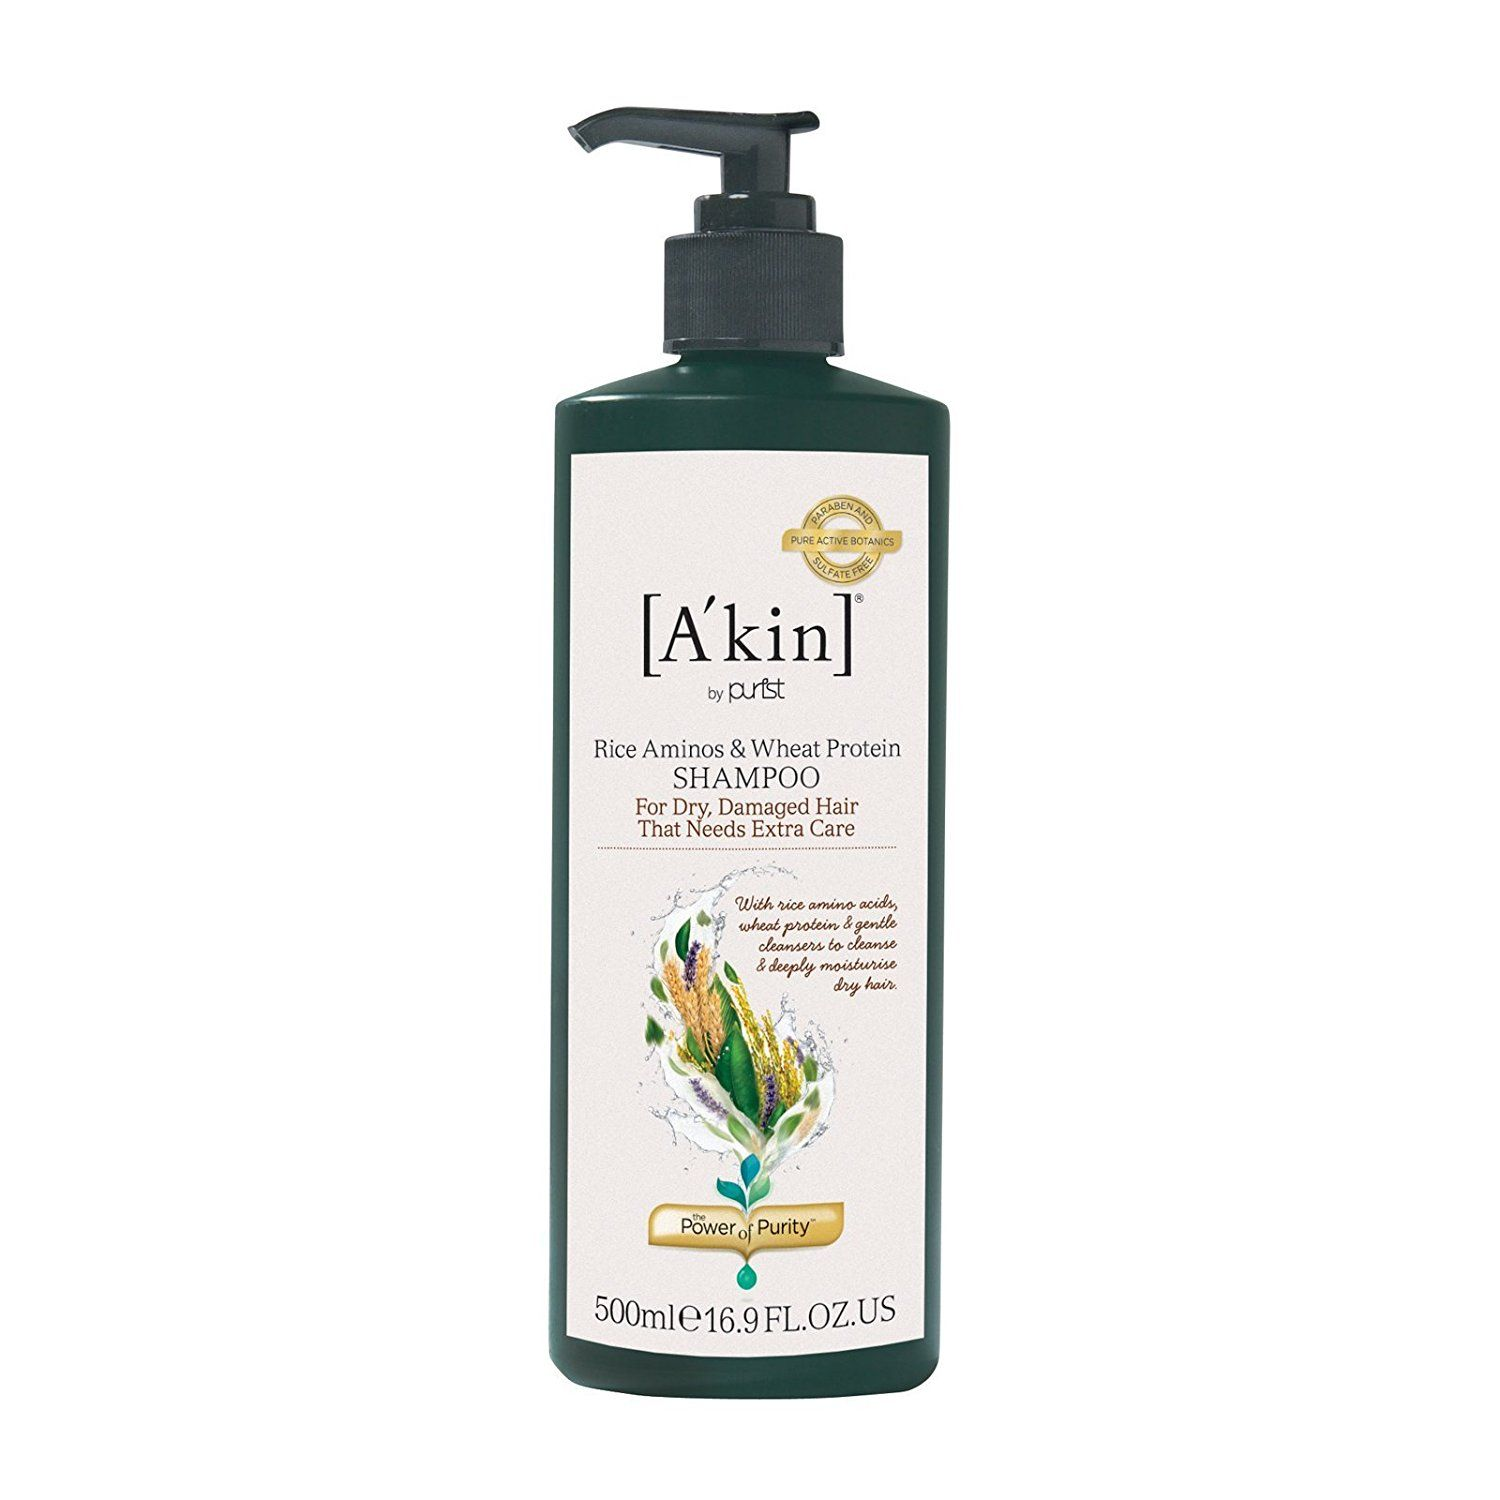 Ogx Intensely Invigorating Eucalyptus Mint Shampoo 13 Fl Oz Pack Of 2 Click Image To Review More Details It I Oily Hair Thin Oily Hair Shampoo For Dry Scalp